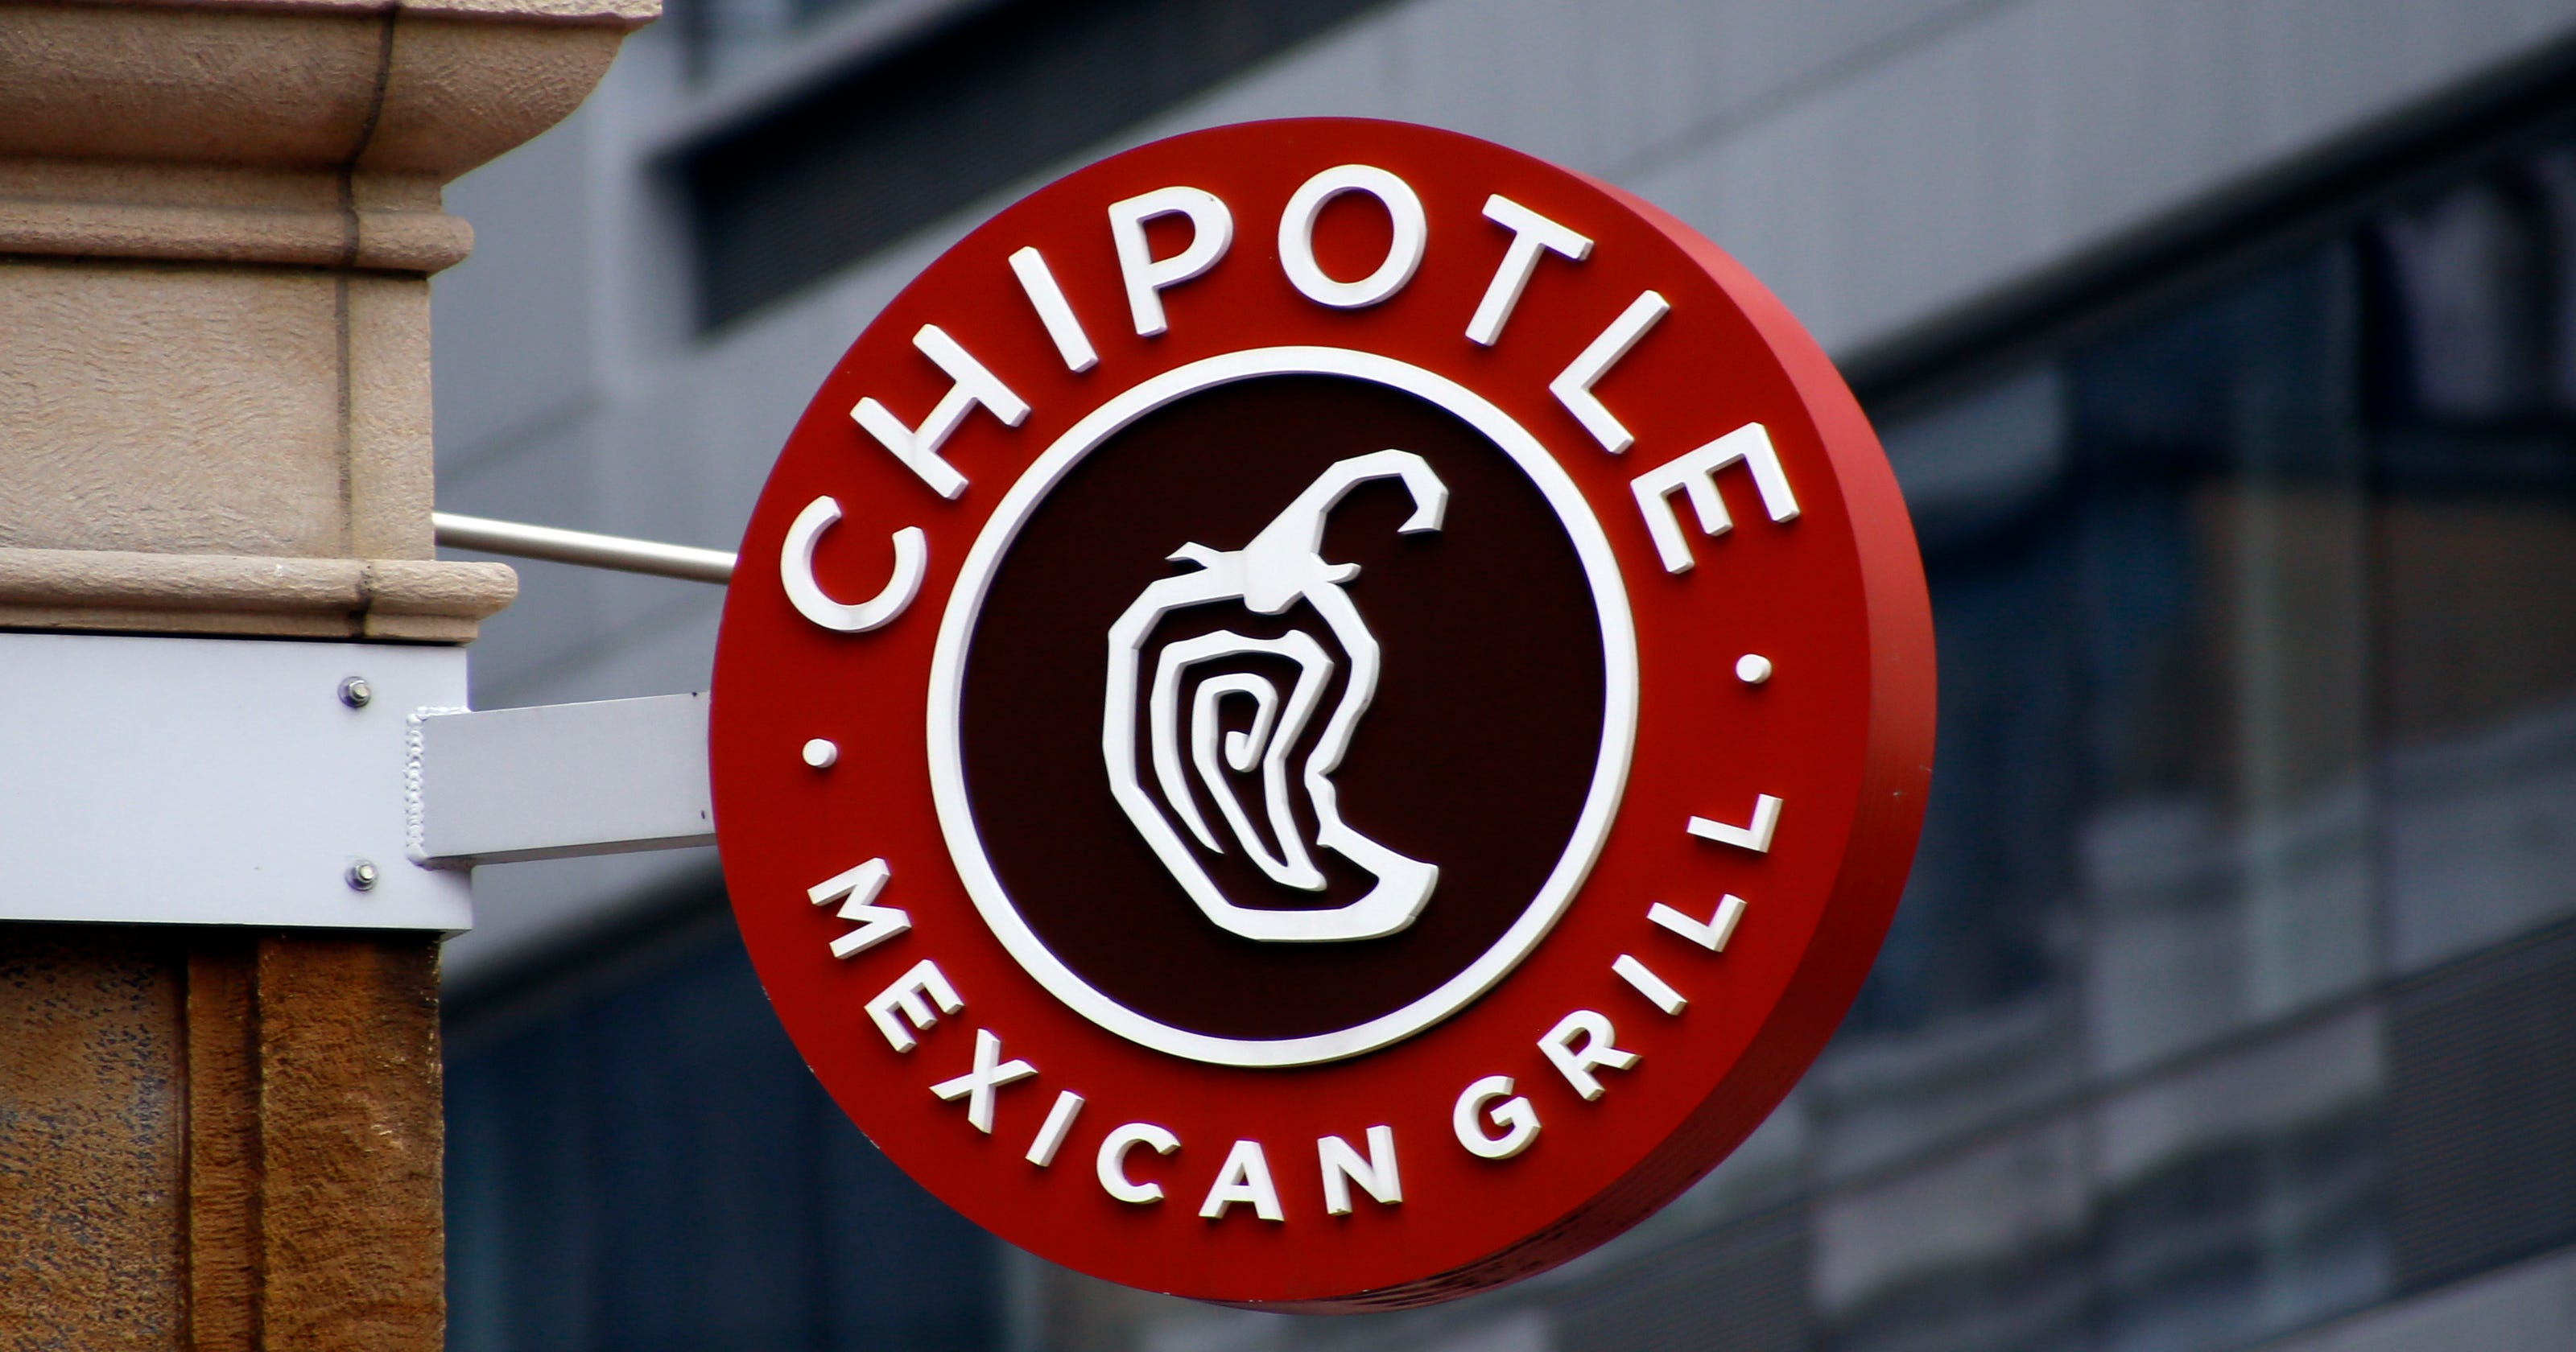 Guacamole on the go: How to get Chipotle fix at Chipotlane